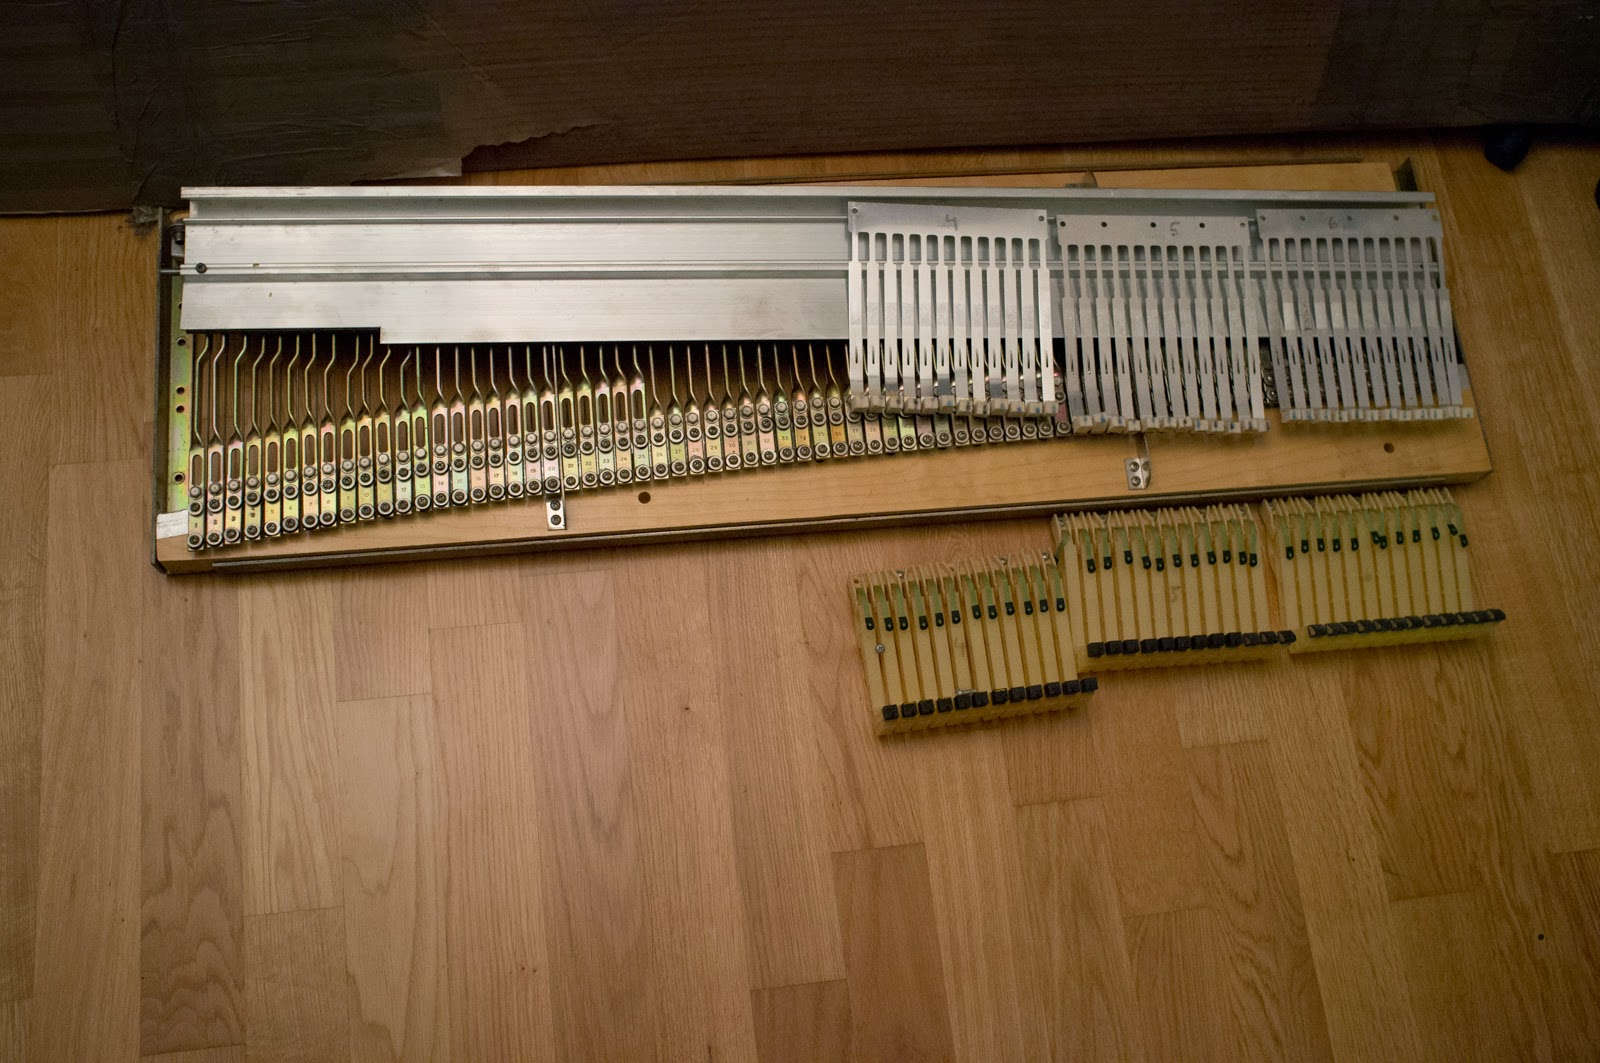 Disassembly of a Fender Rhodes Mark II: 01 Removing the Harp ...